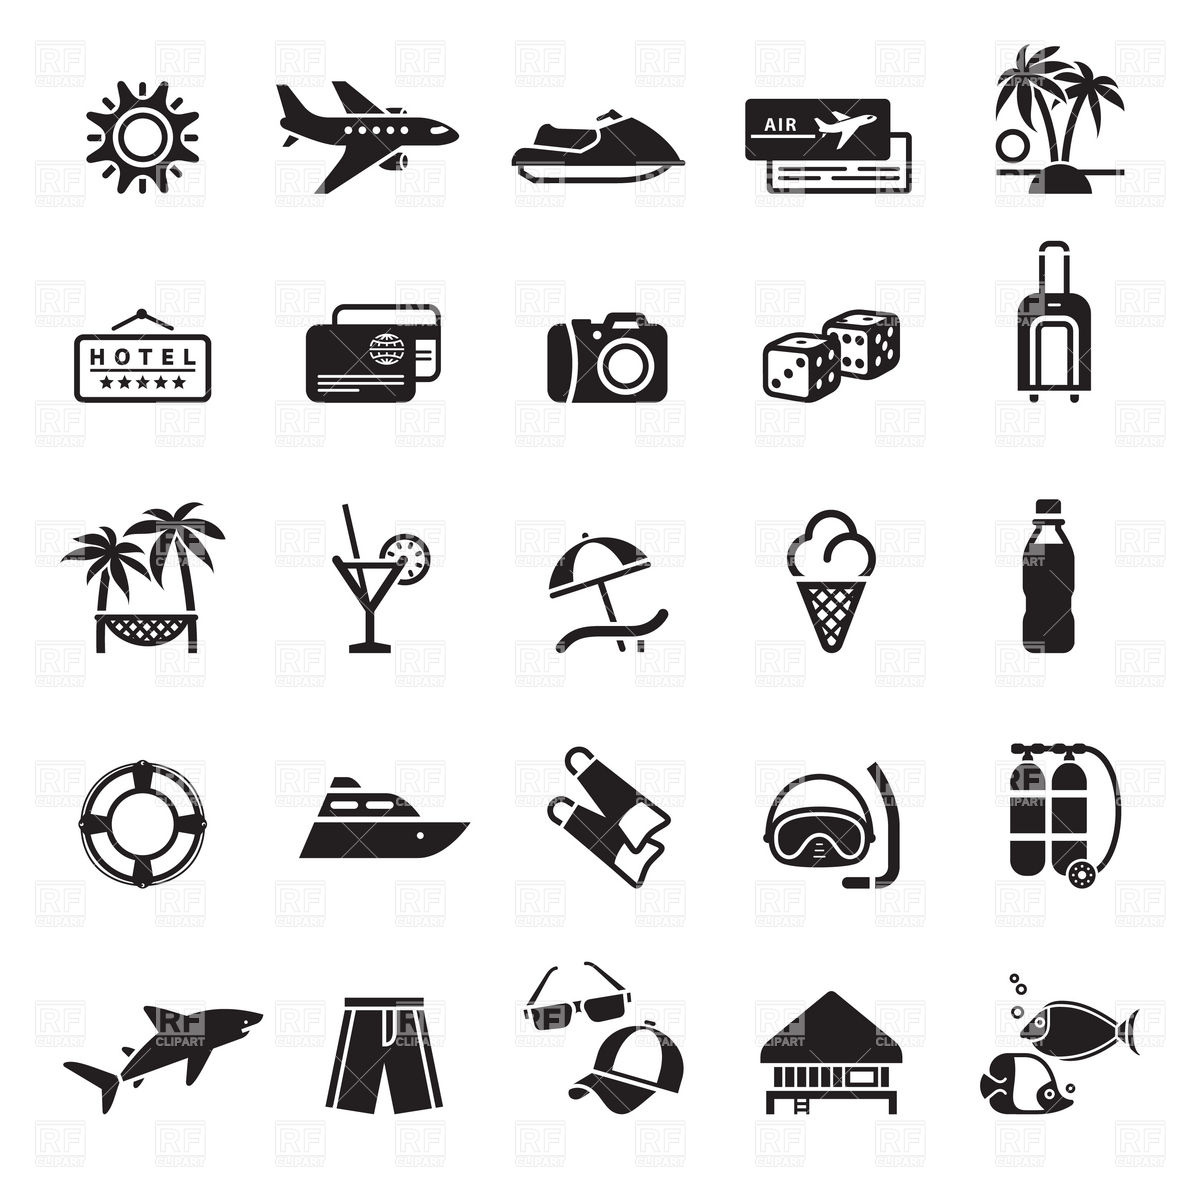 Vacation, travel and summer holiday icons Vector Image #17903.